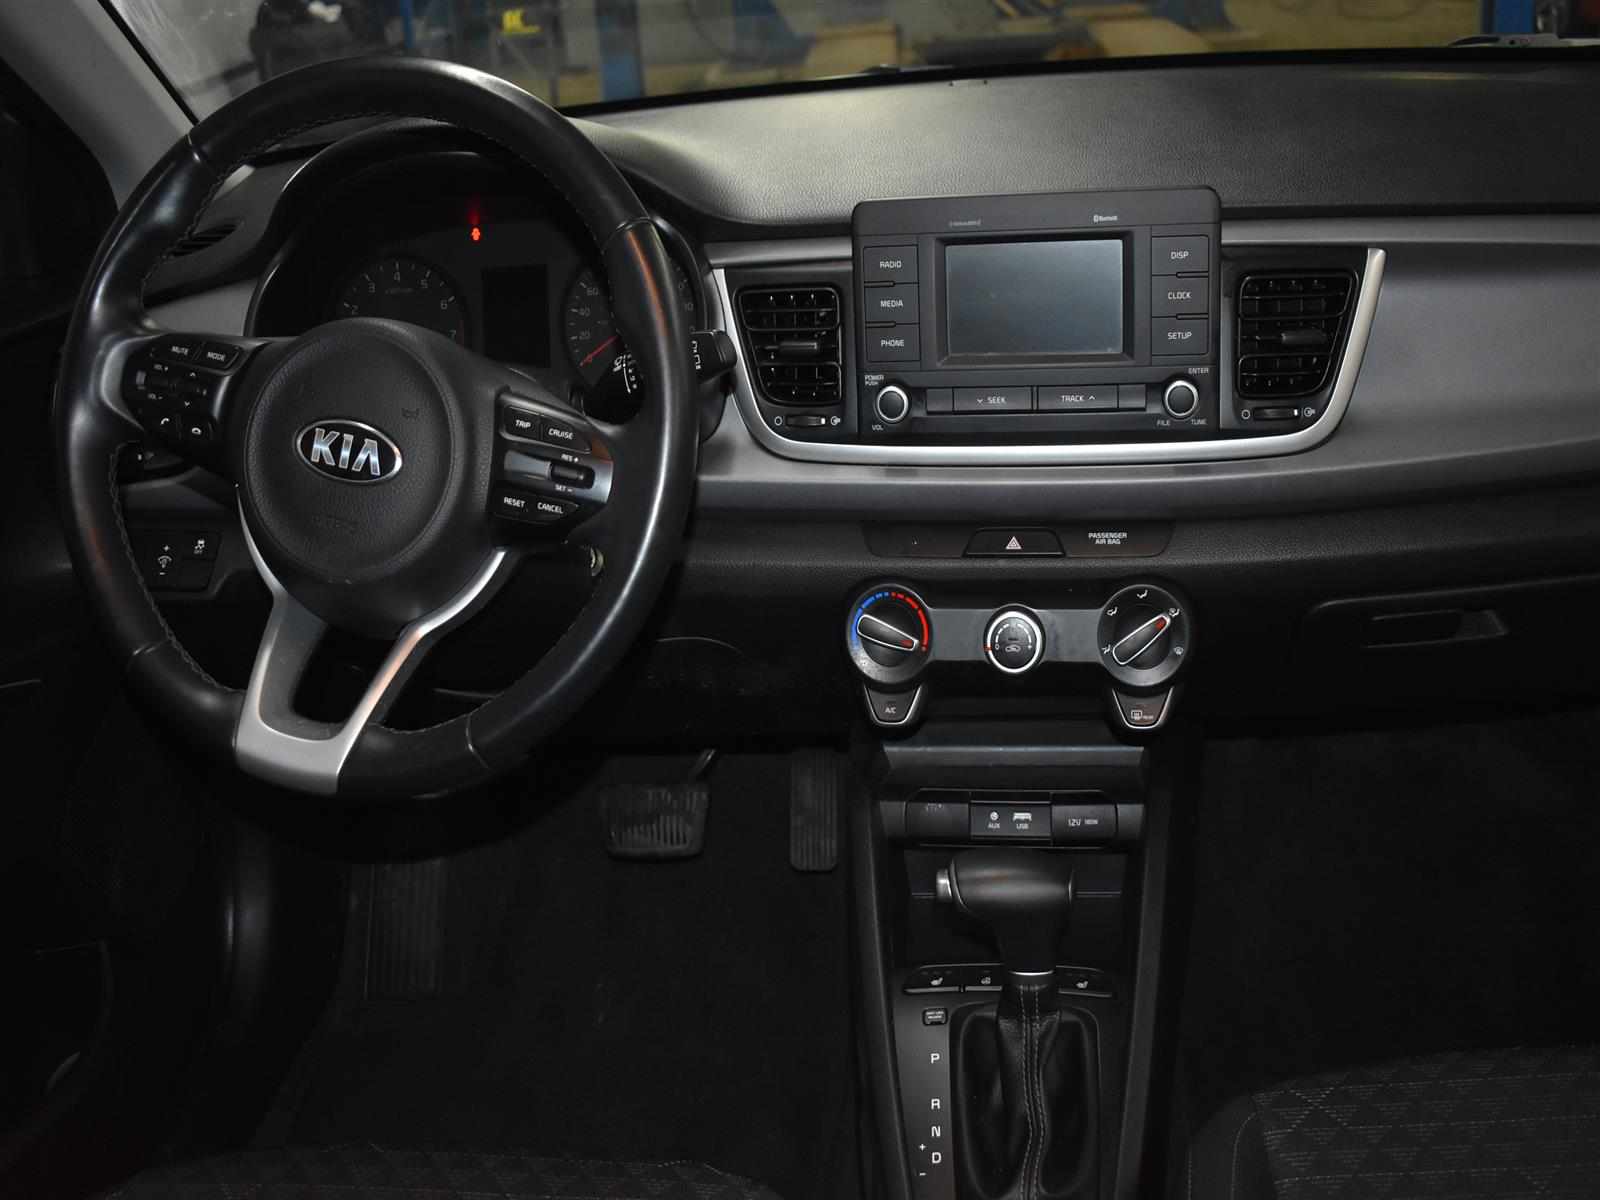 2018 Kia Rio5 LX+ * LOW KMS * ALLOY WHEELS * BLUETOOTH *